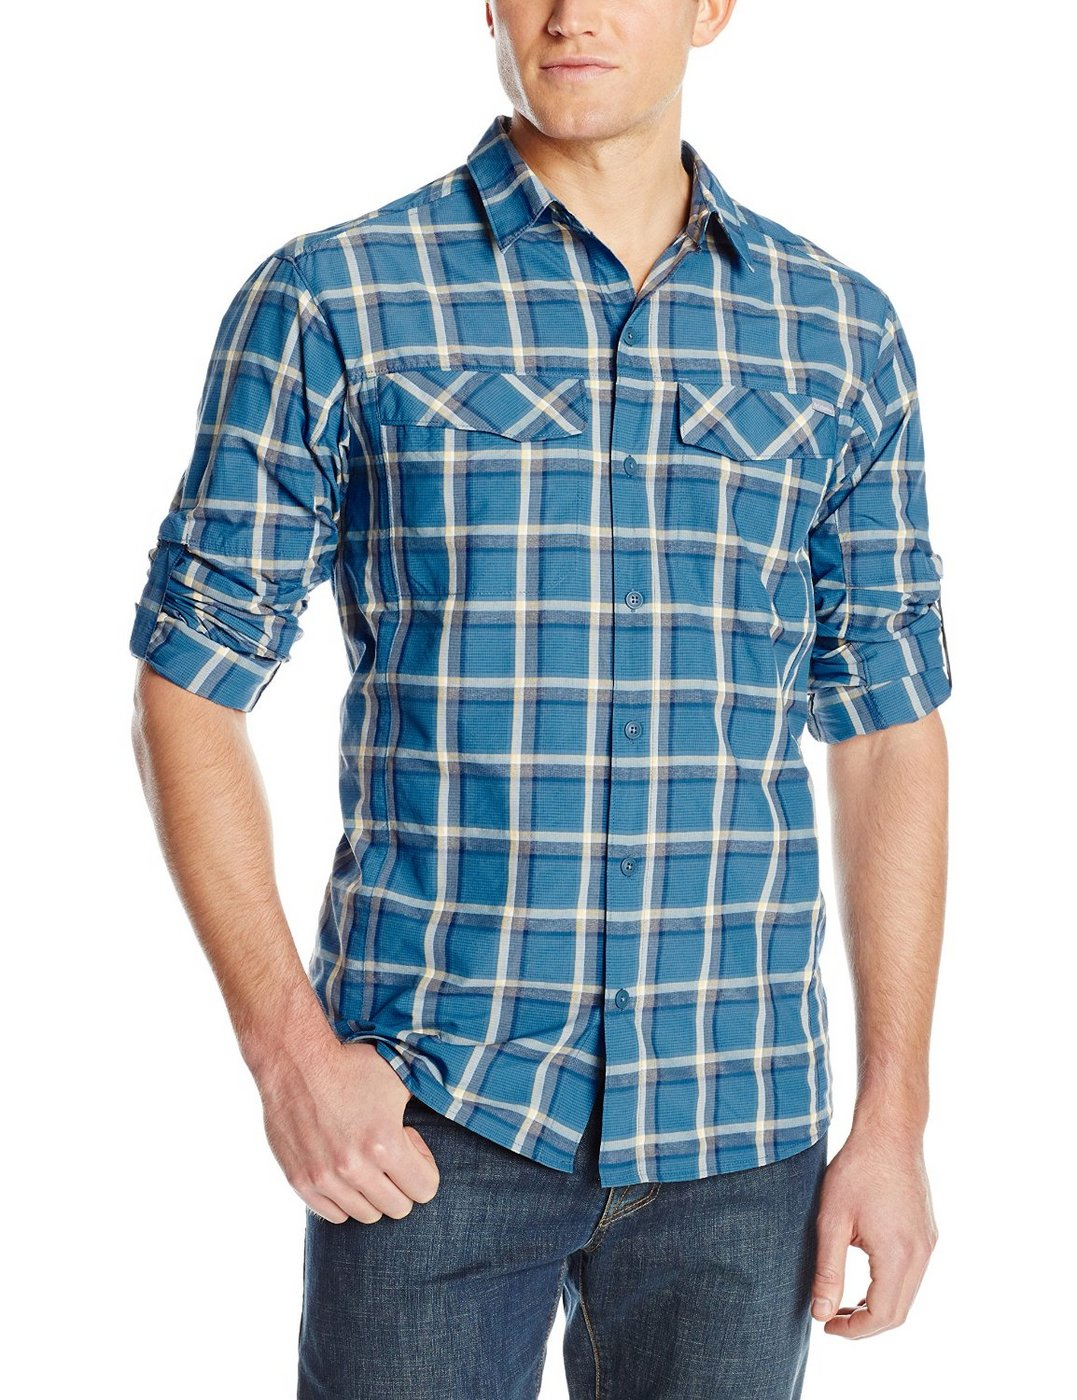 67cb7293d84 Columbia Silver Ridge Plaid Long Sleeve Shirt | Fontana Sports